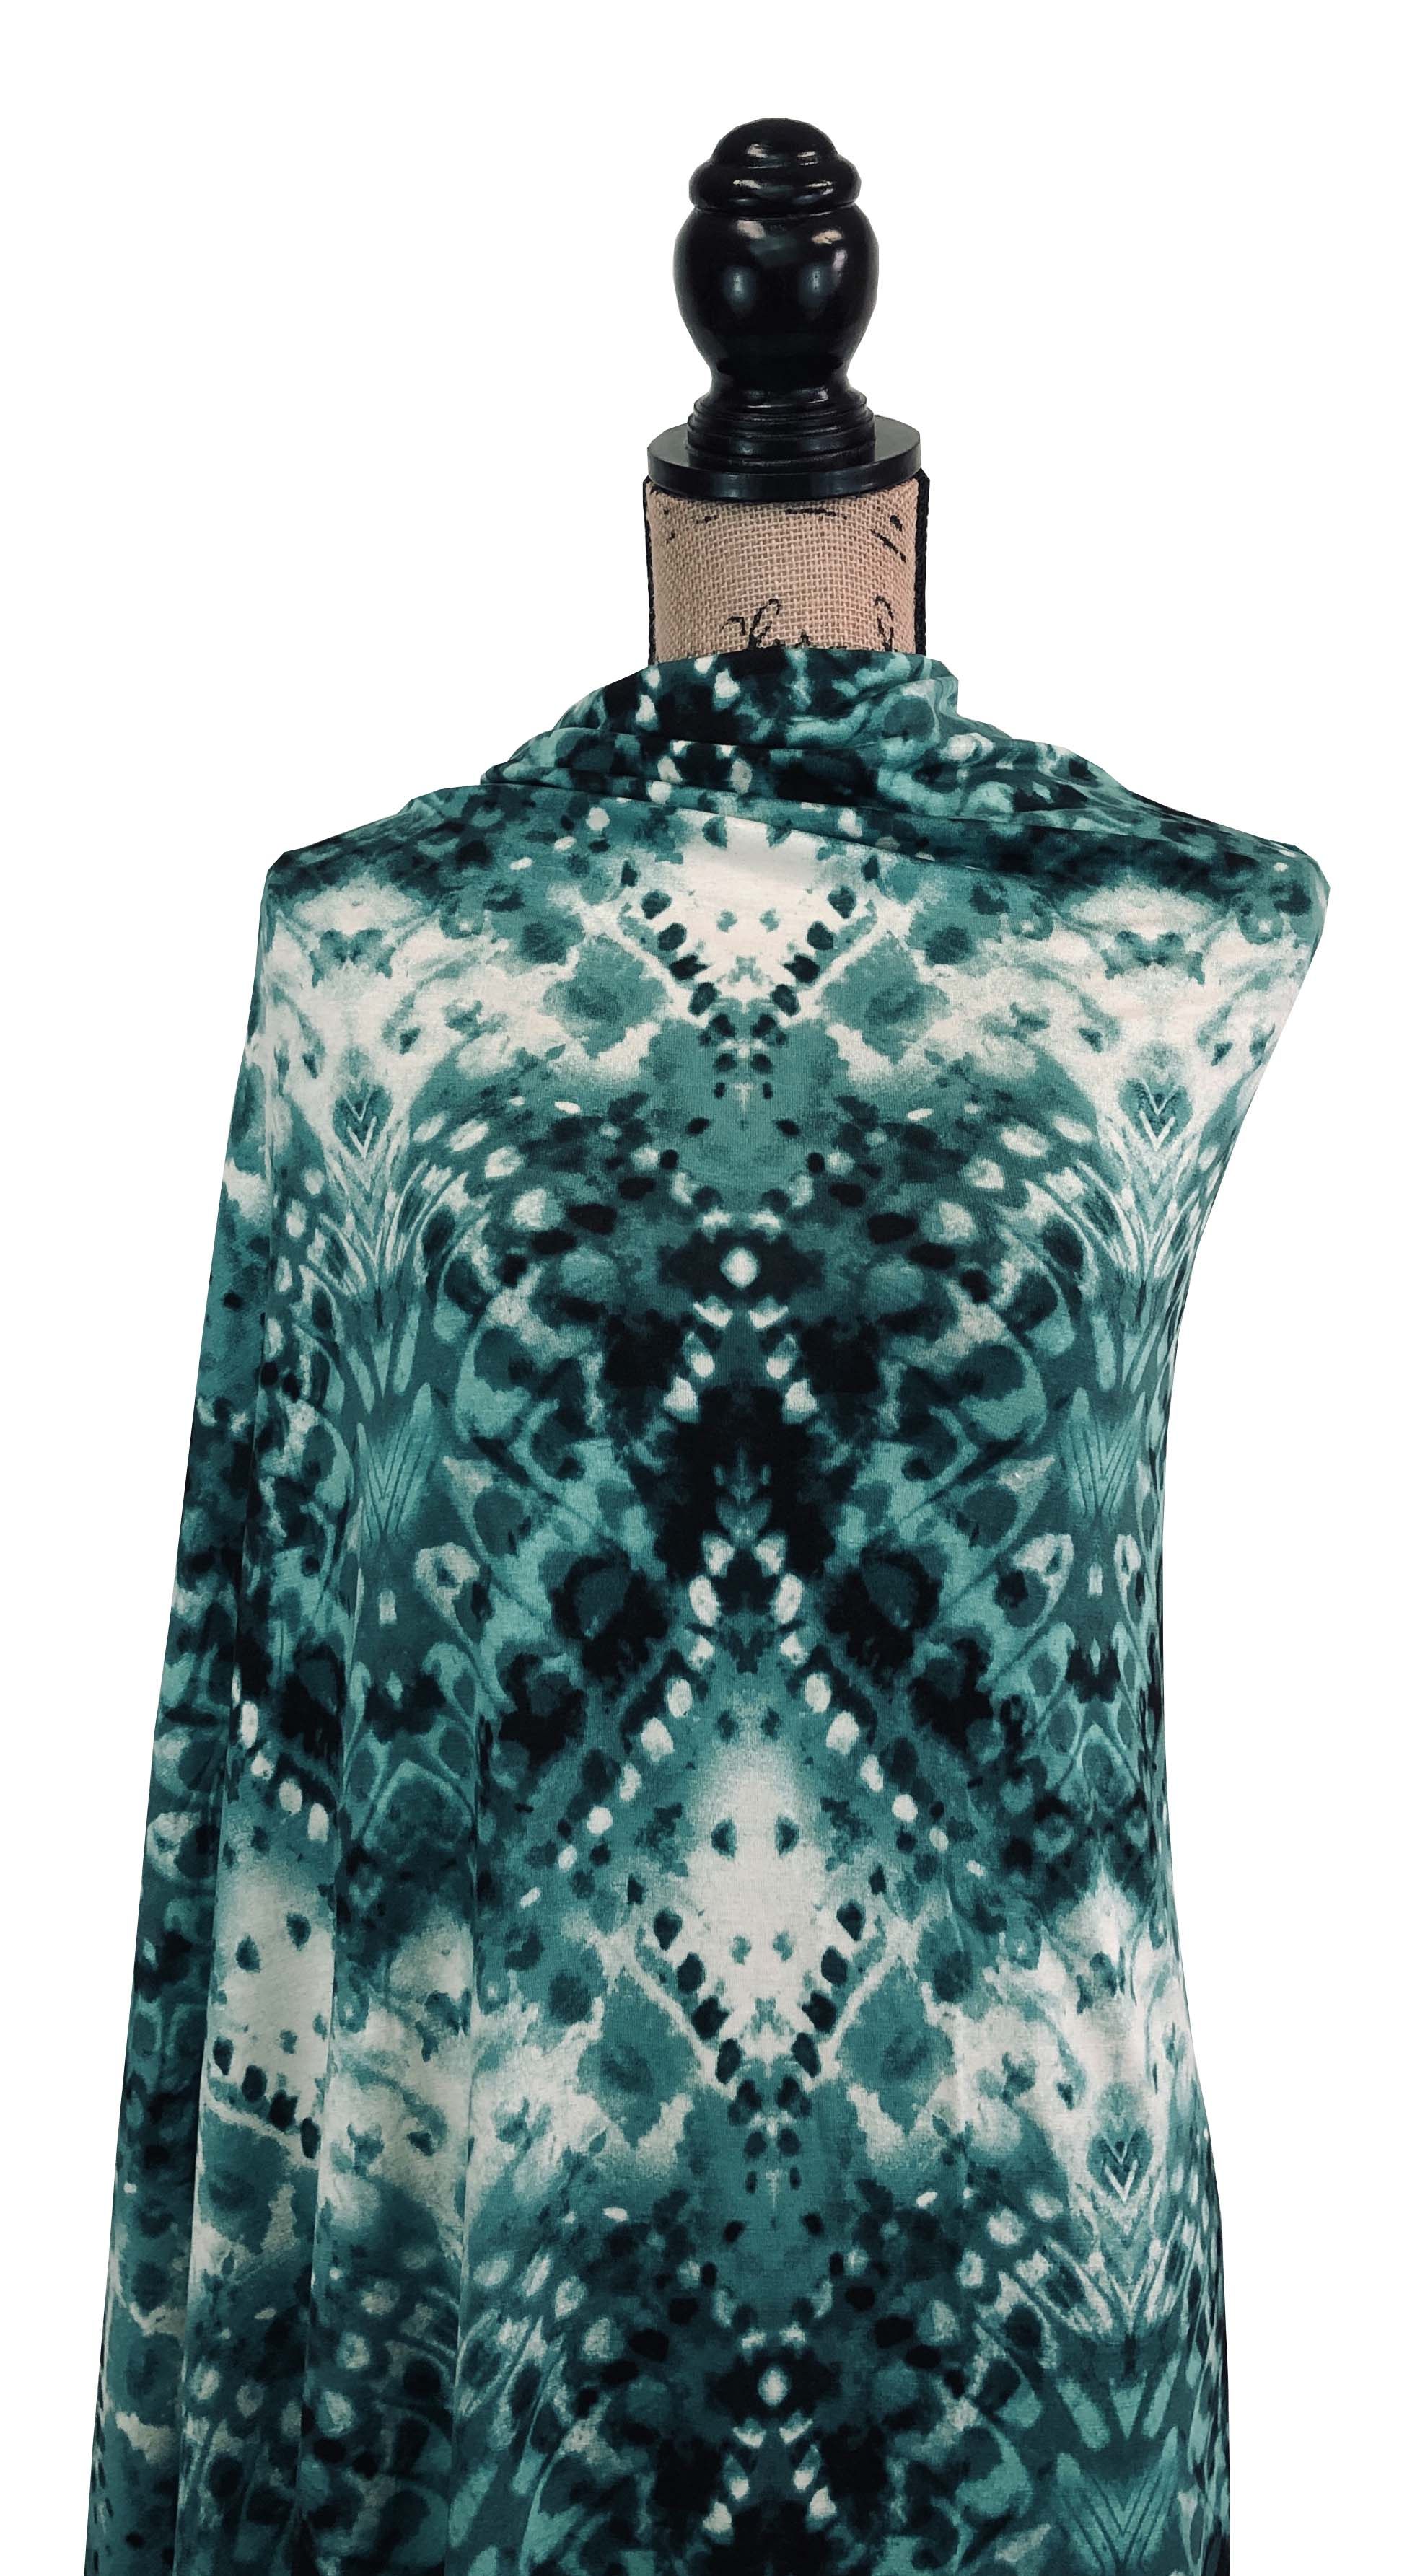 Rayon Spandex - Disco Fever in Jade